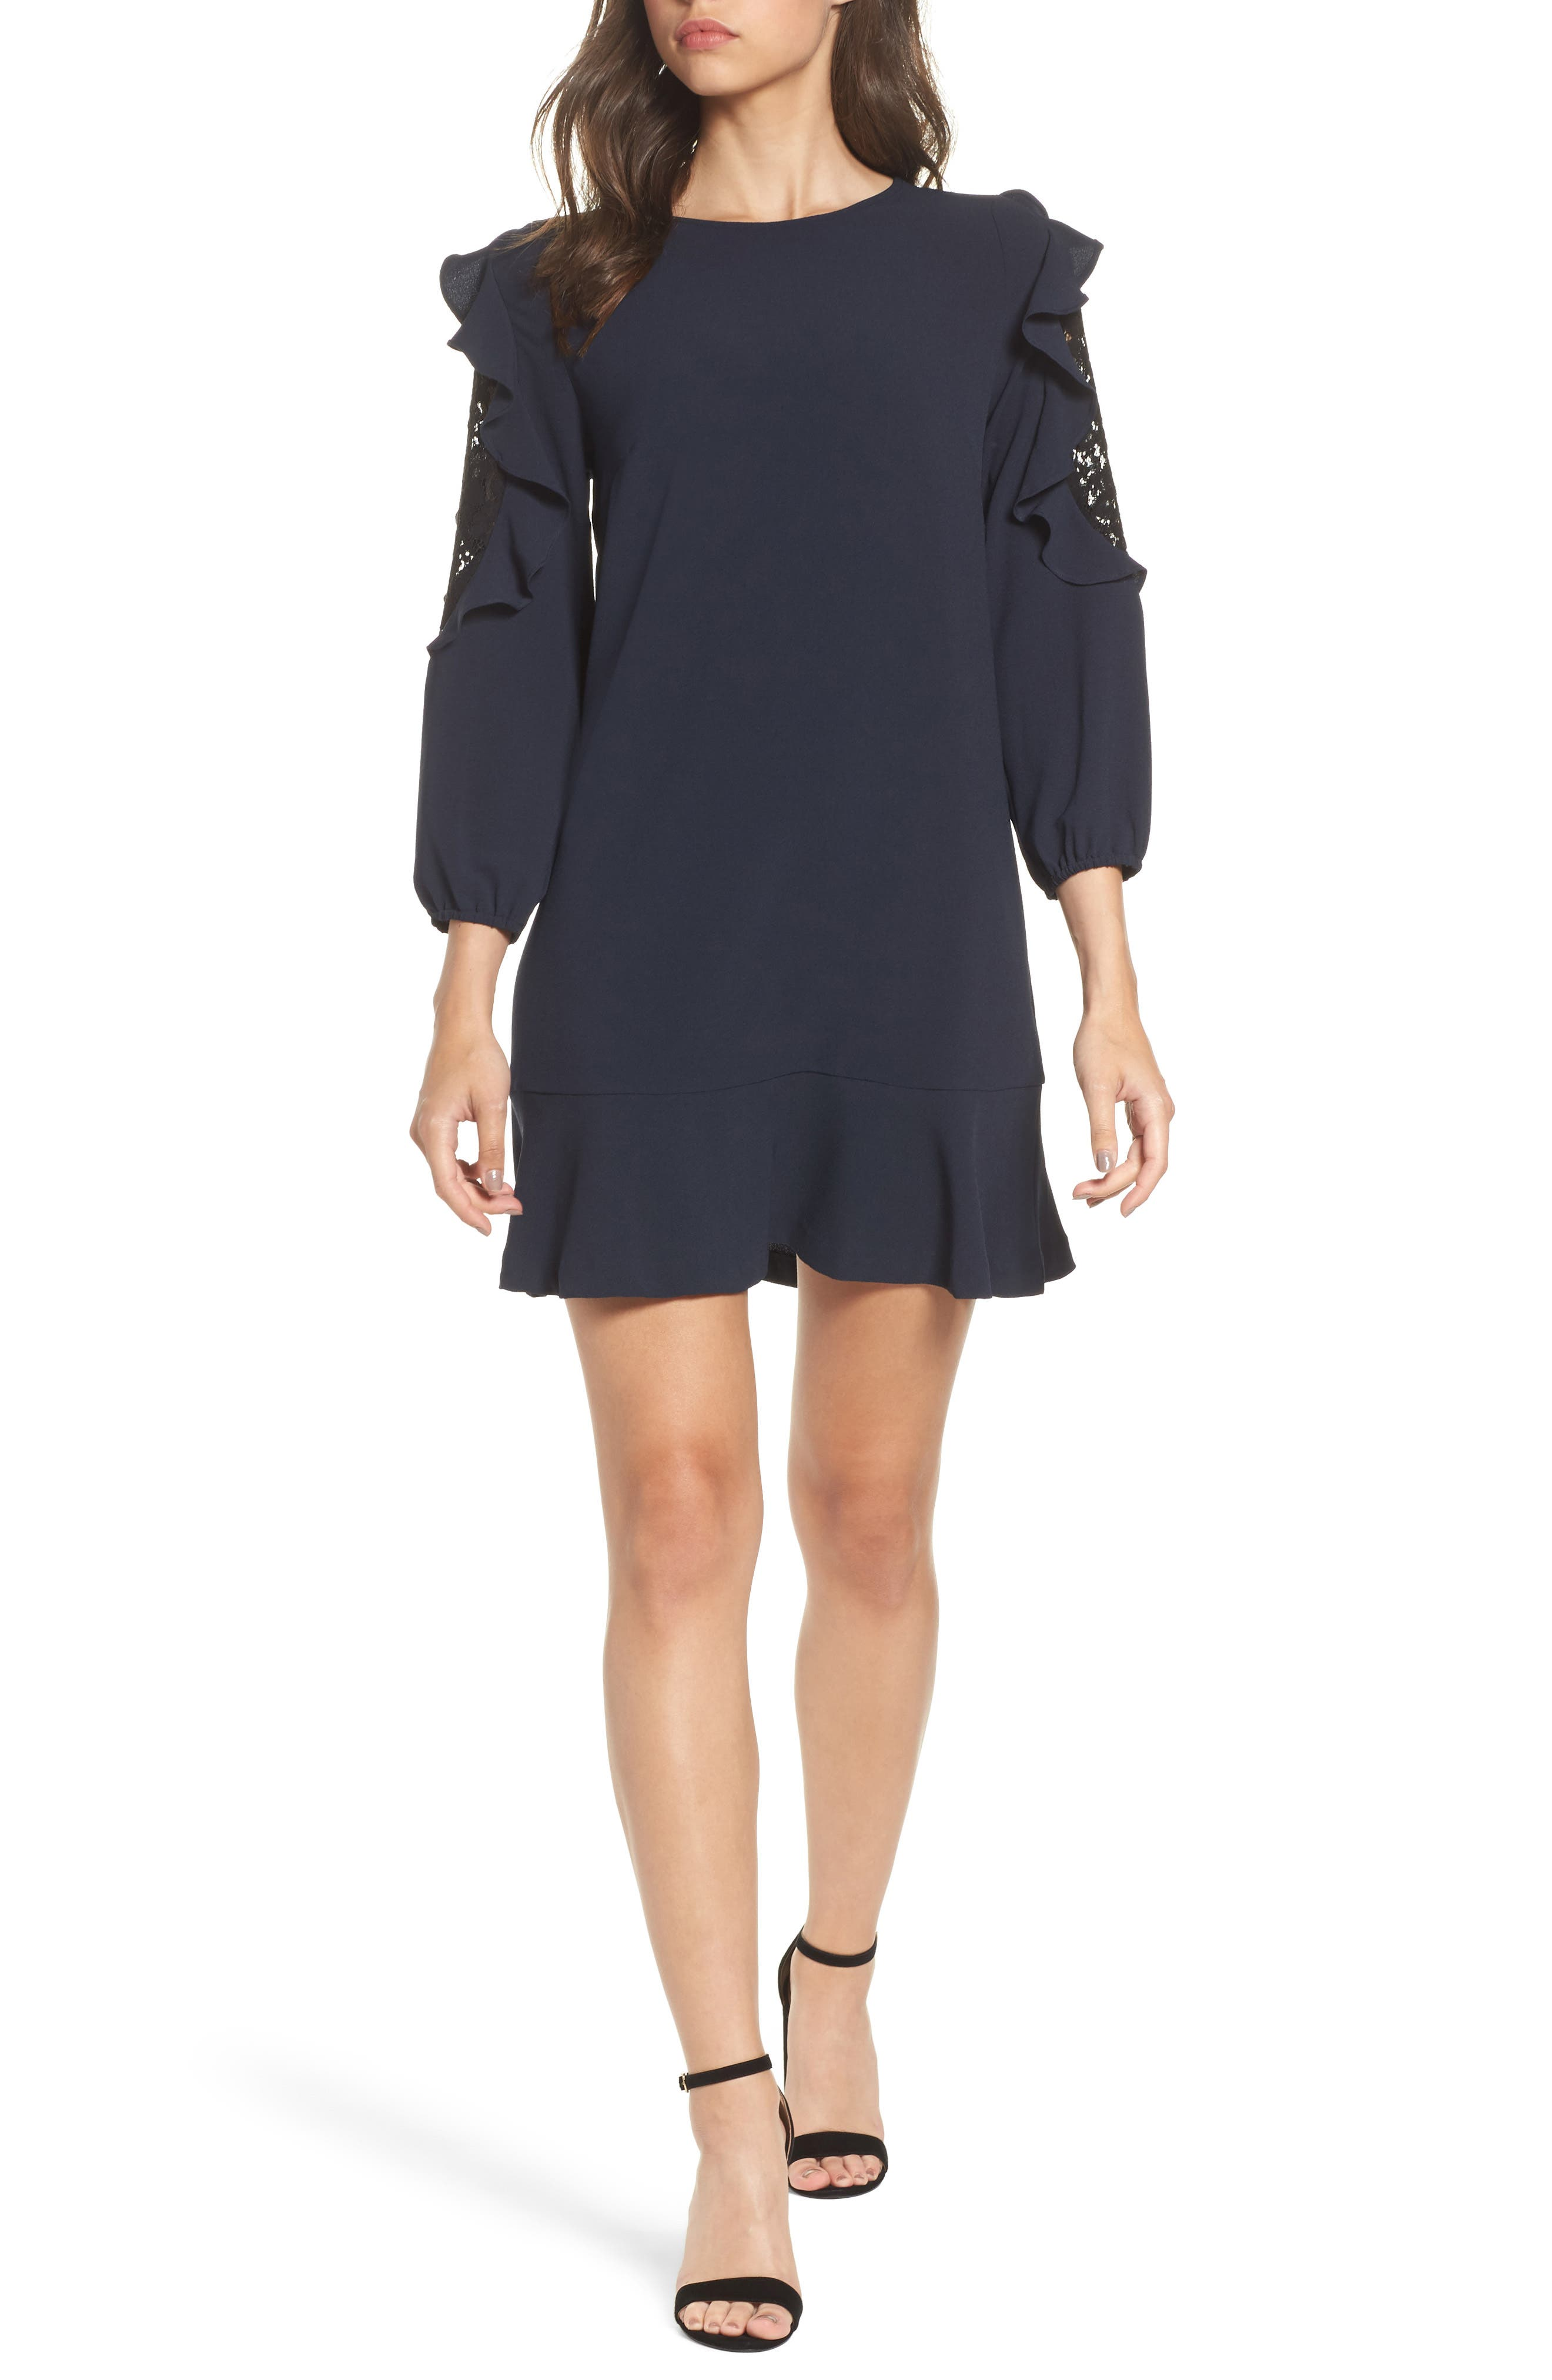 Alternate Image 1 Selected - Felicity & Coco Stefani Ruffle Lace Dress (Nordstrom Exclusive)